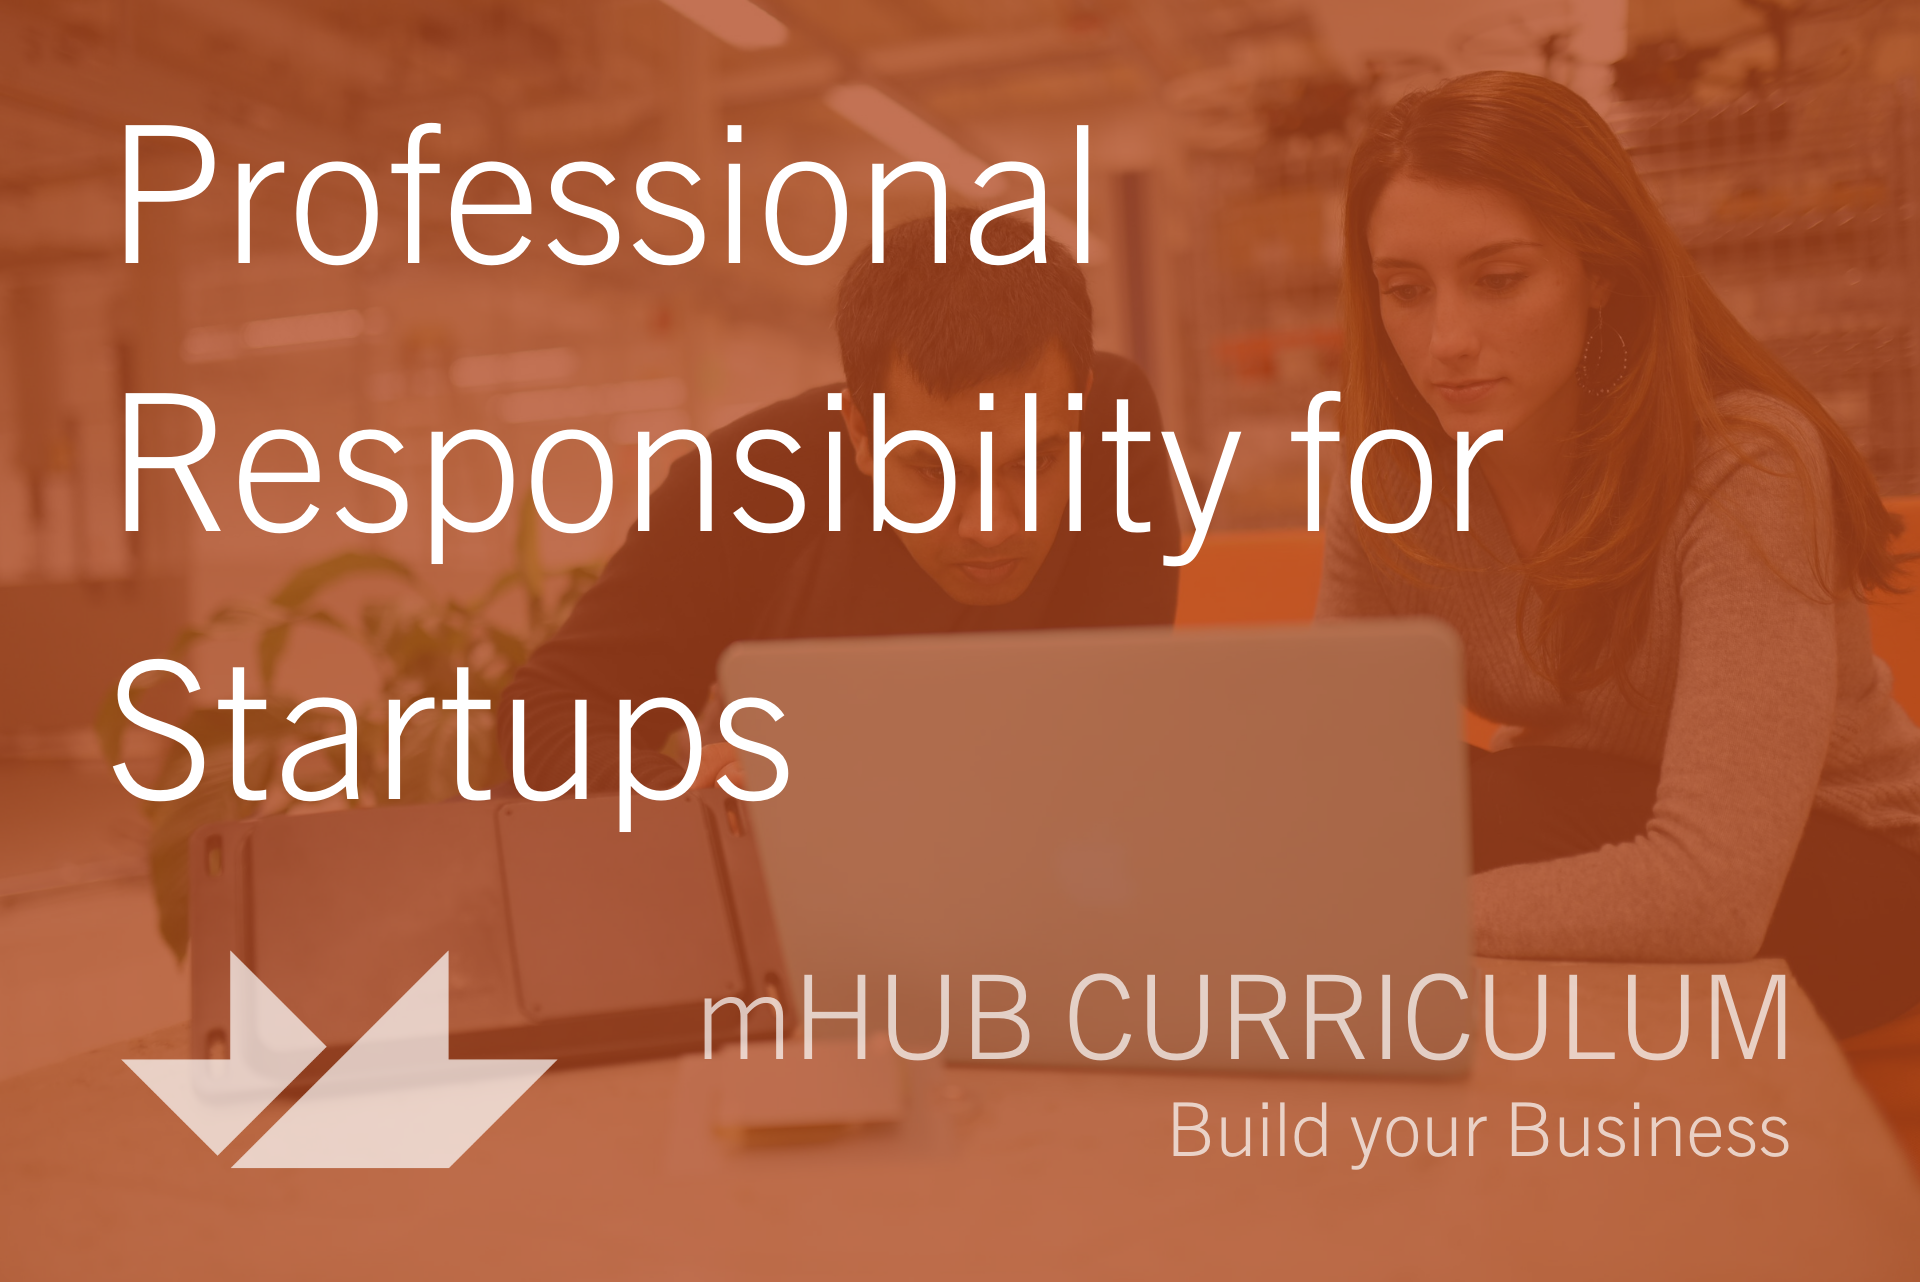 Professional Responsibility for Startups